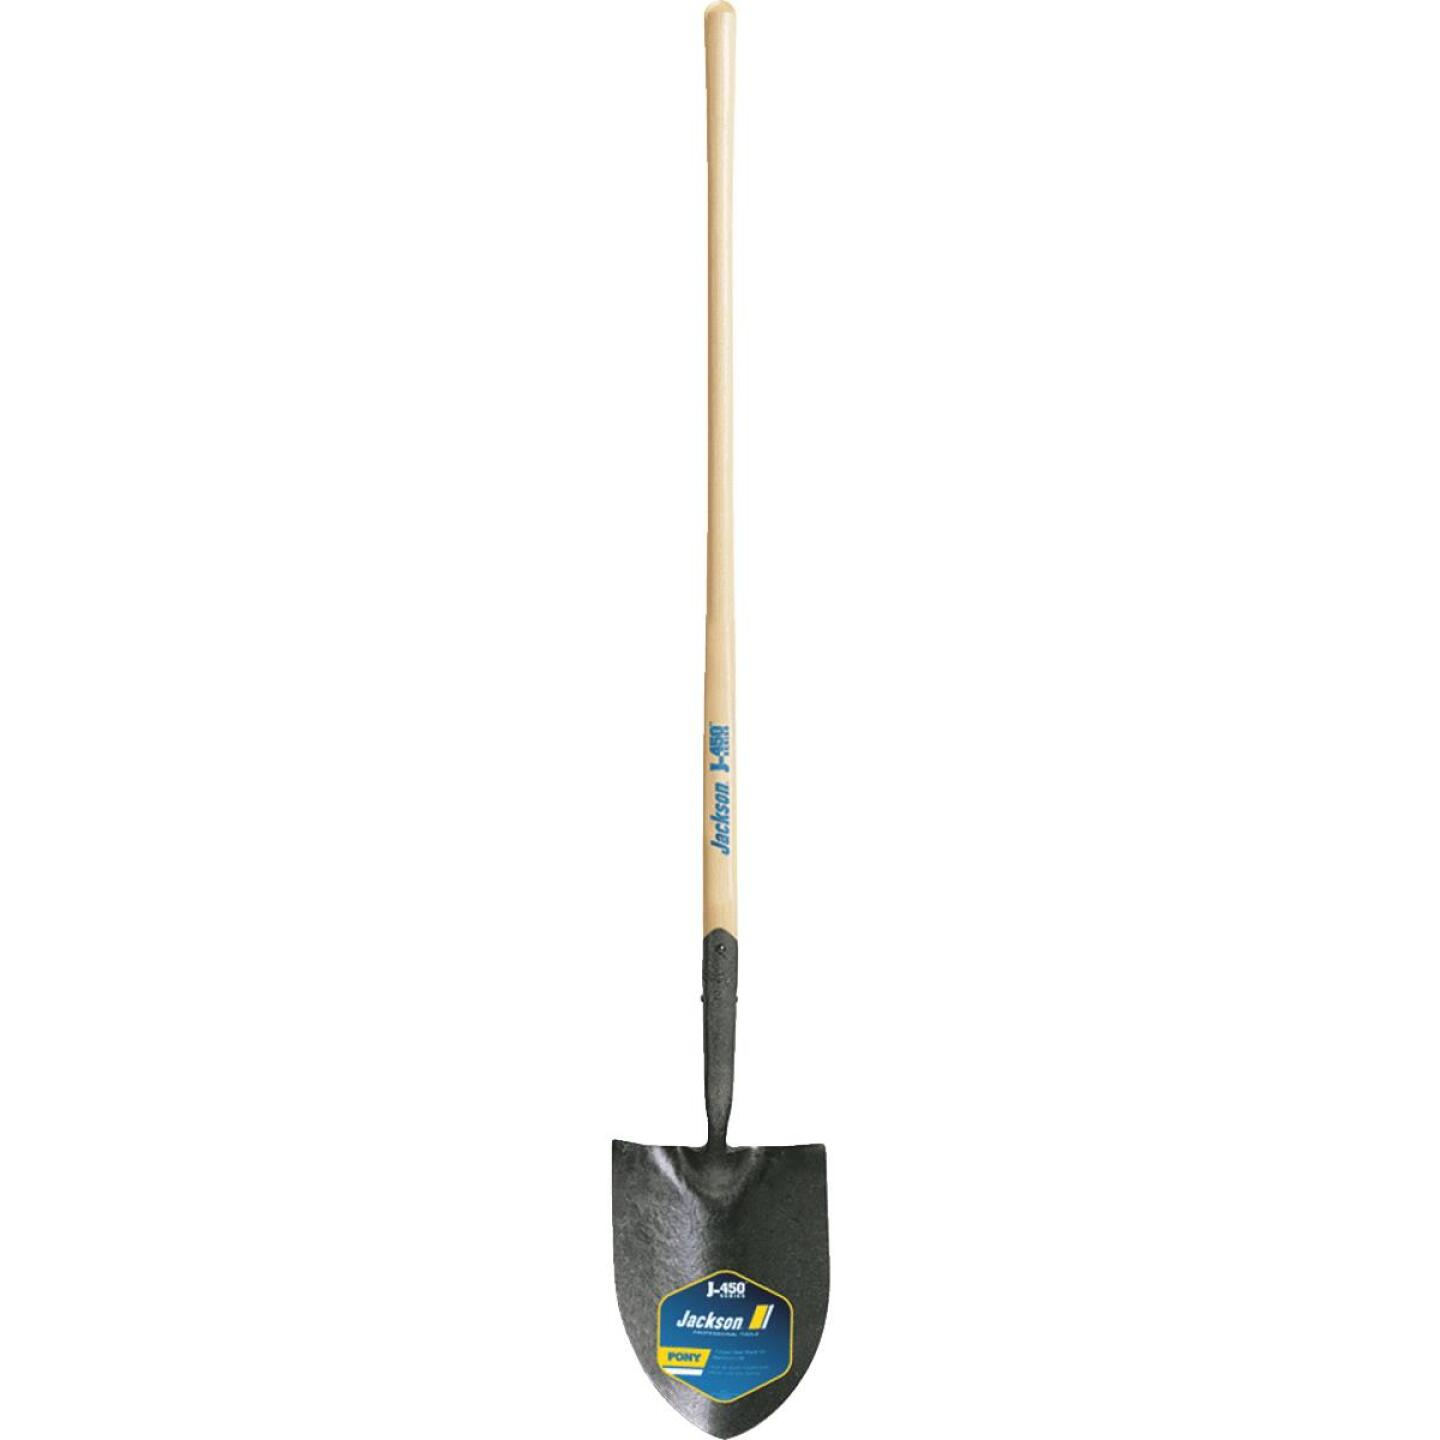 Jackson Pony J-450 Series 47 In. Wood Handle Round Point Contractor Shovel Image 2